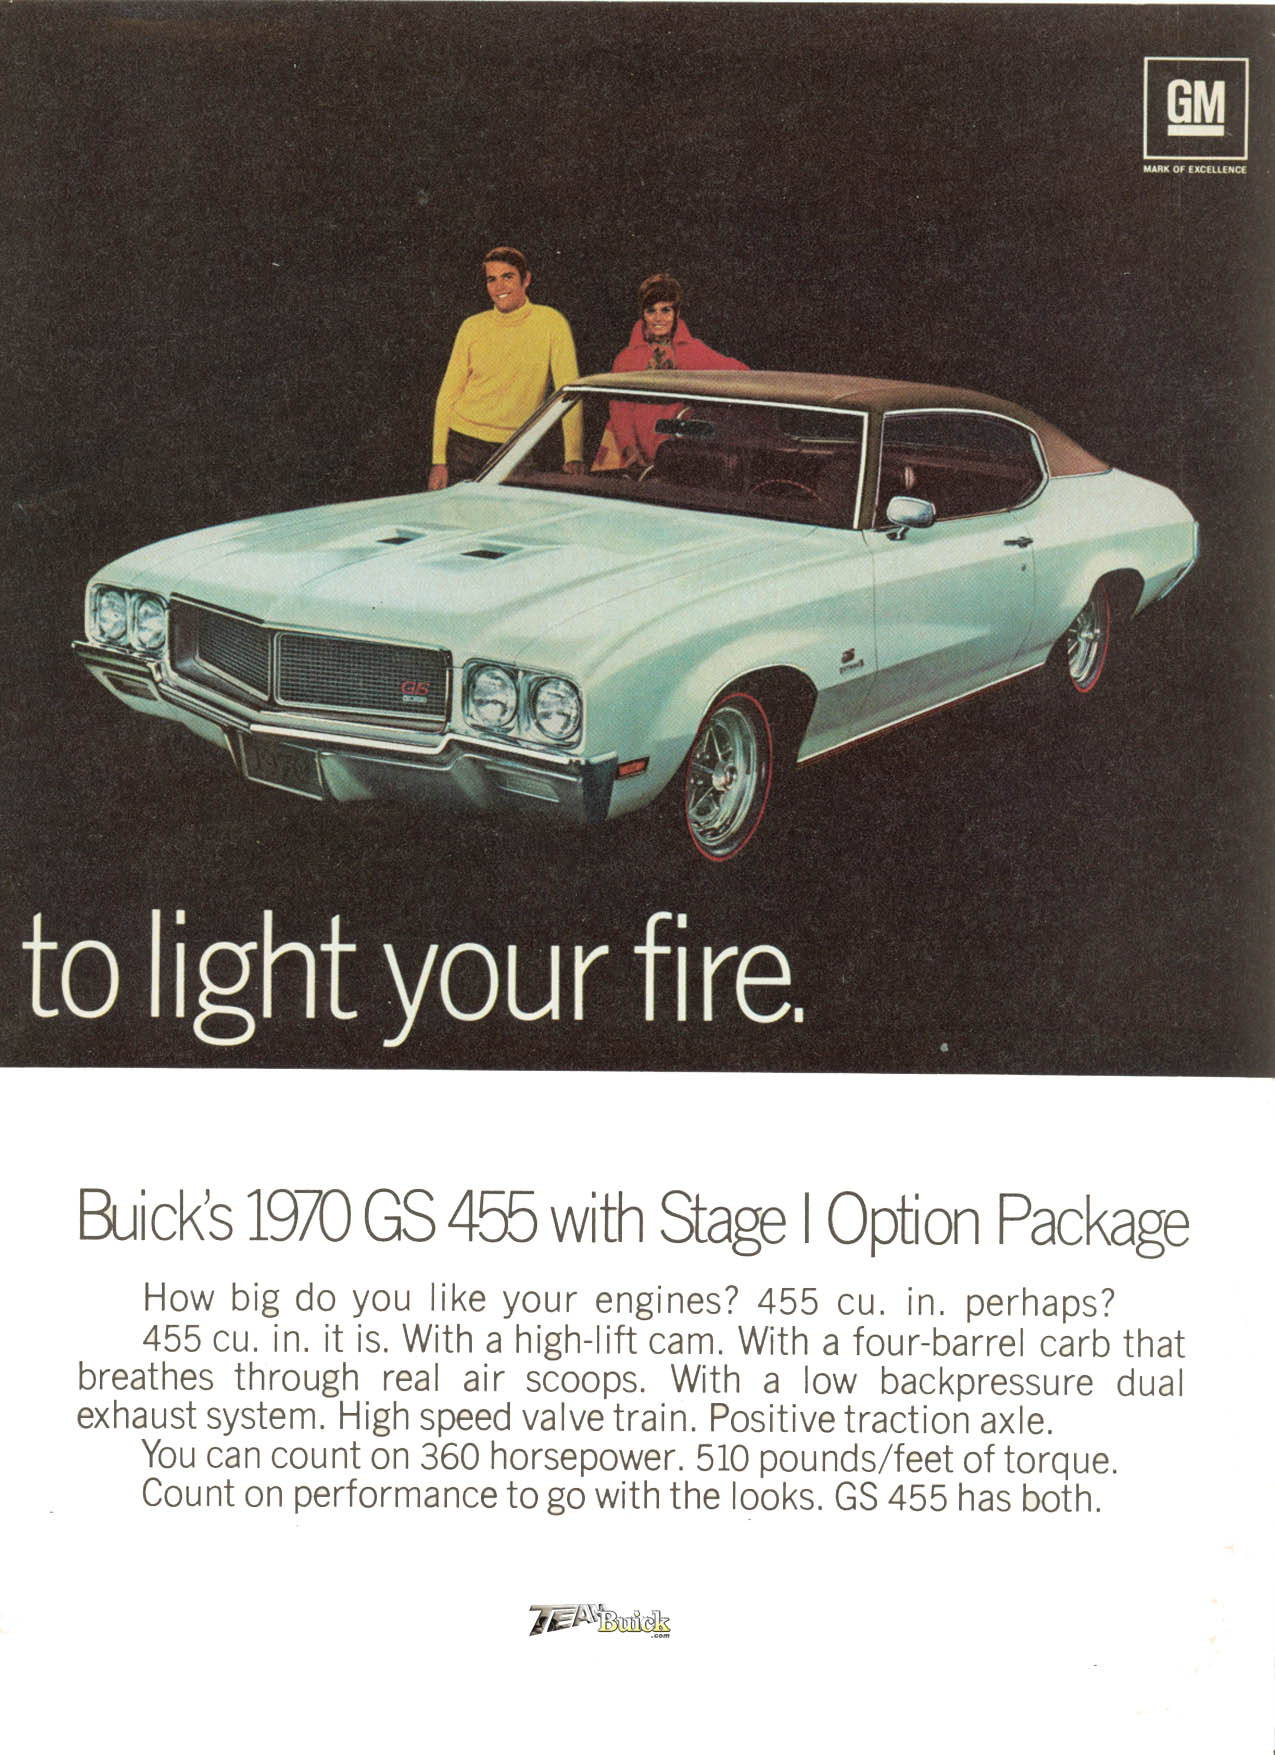 1970 GS 455 ad poster